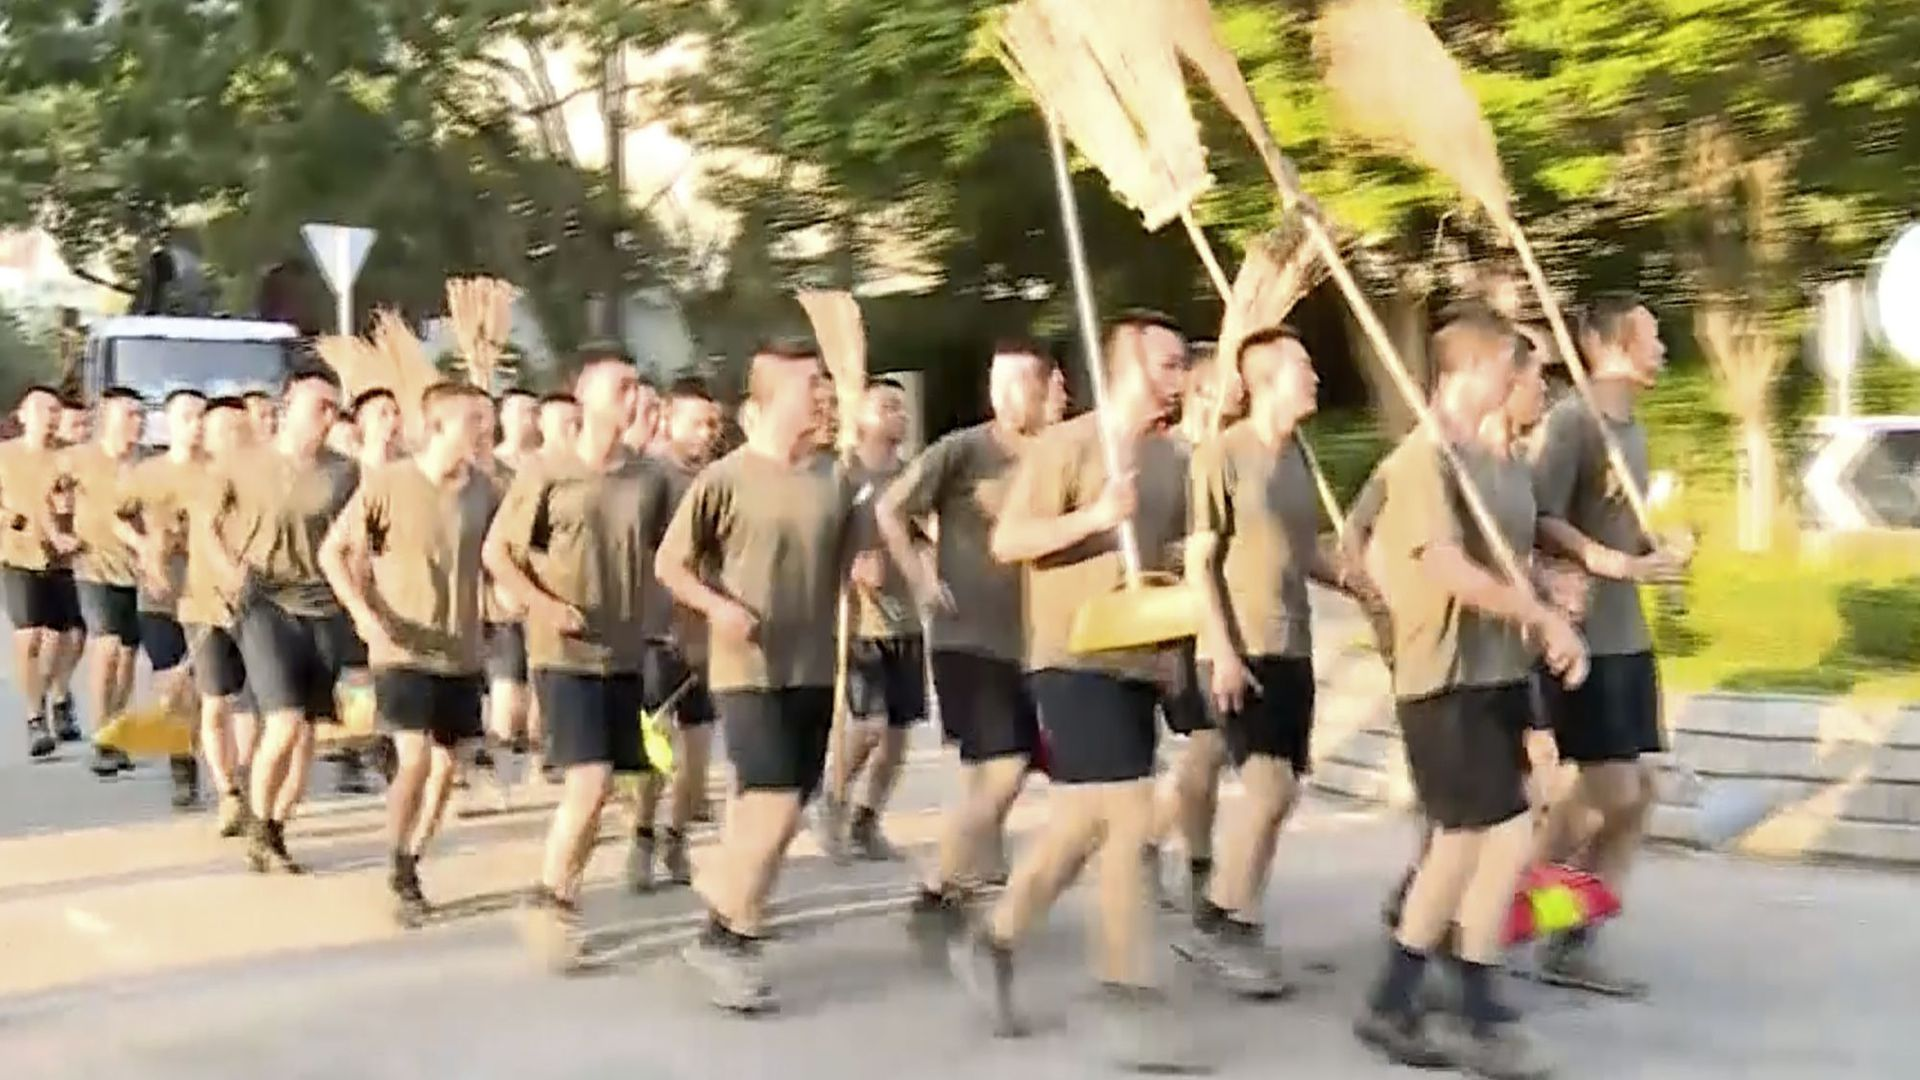 Troops running.